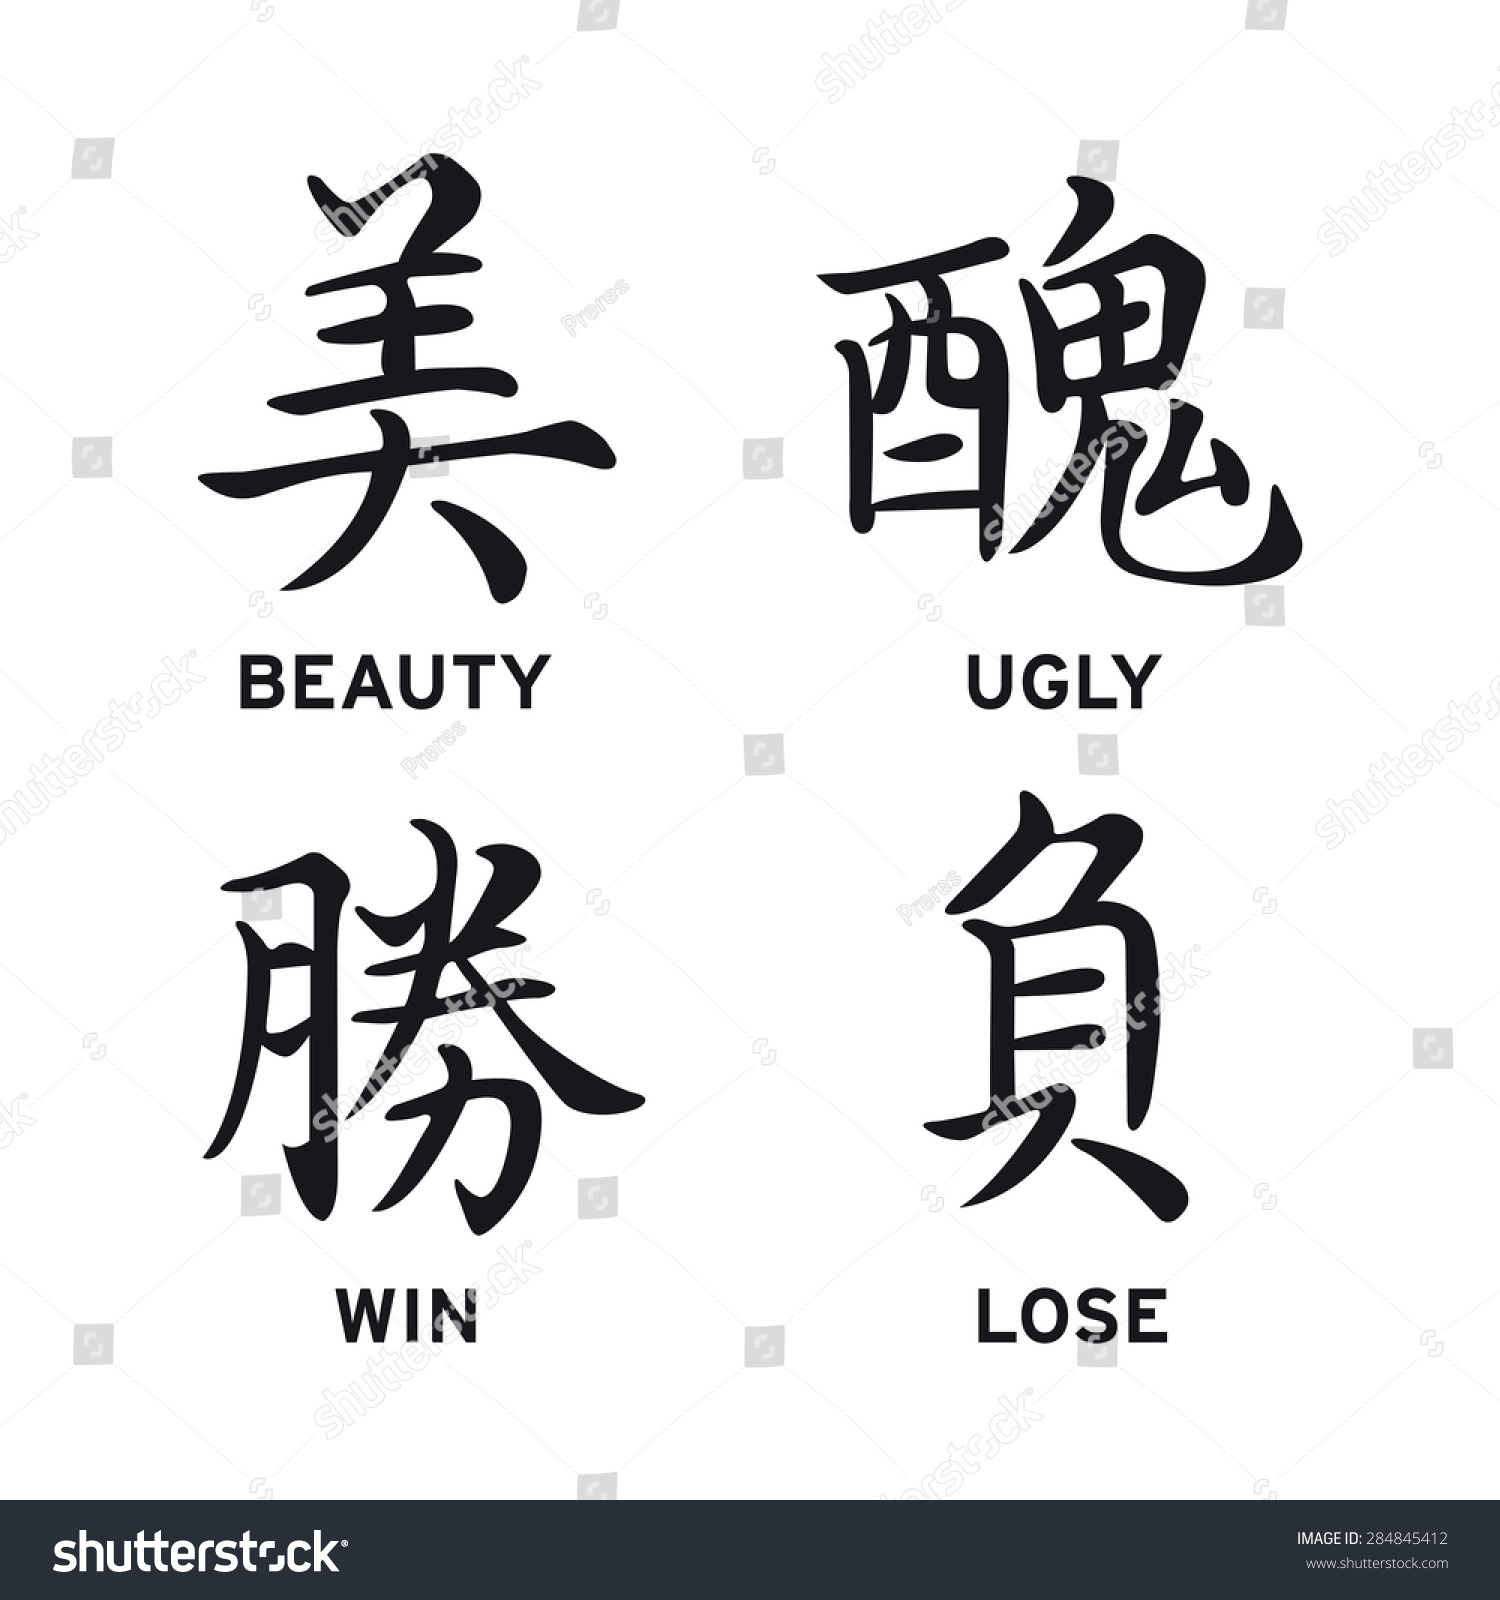 Royalty Free Chinese Symbols Beauty Ugly Win Lose 284845412 Stock